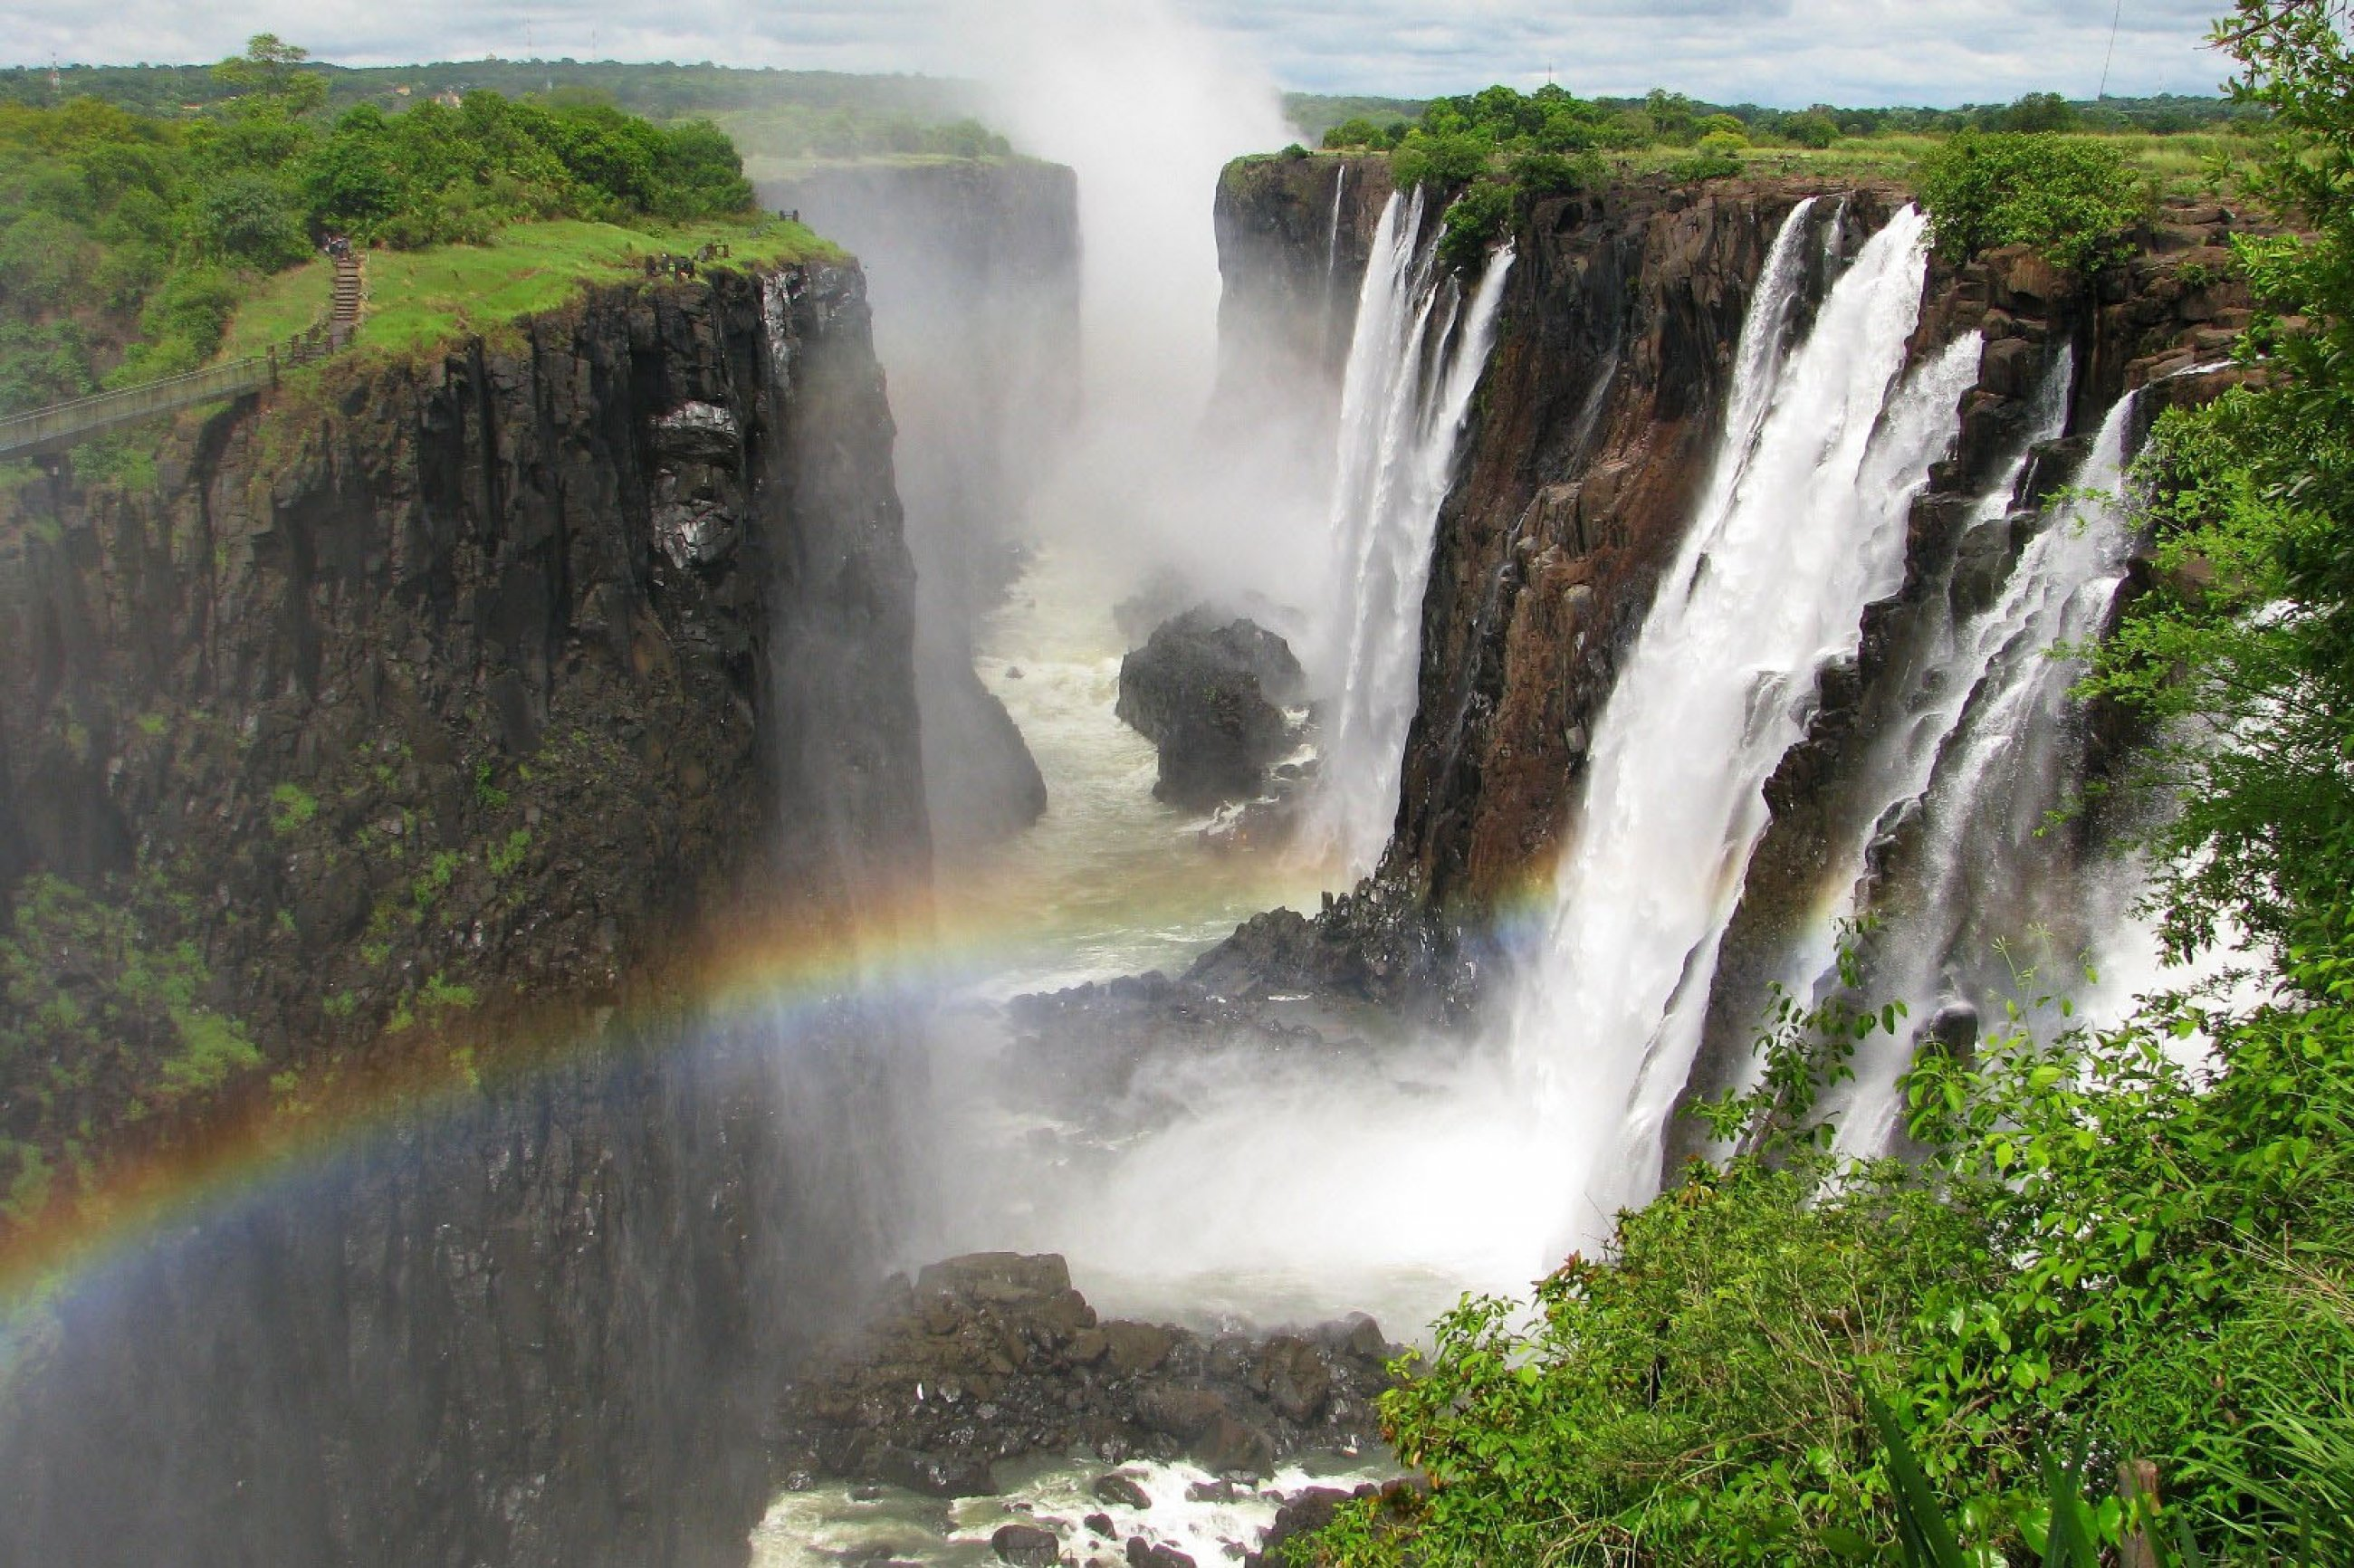 https://bubo.sk/uploads/galleries/7504/total-victoria-falls-dreamstime-xl-24692847.jpg